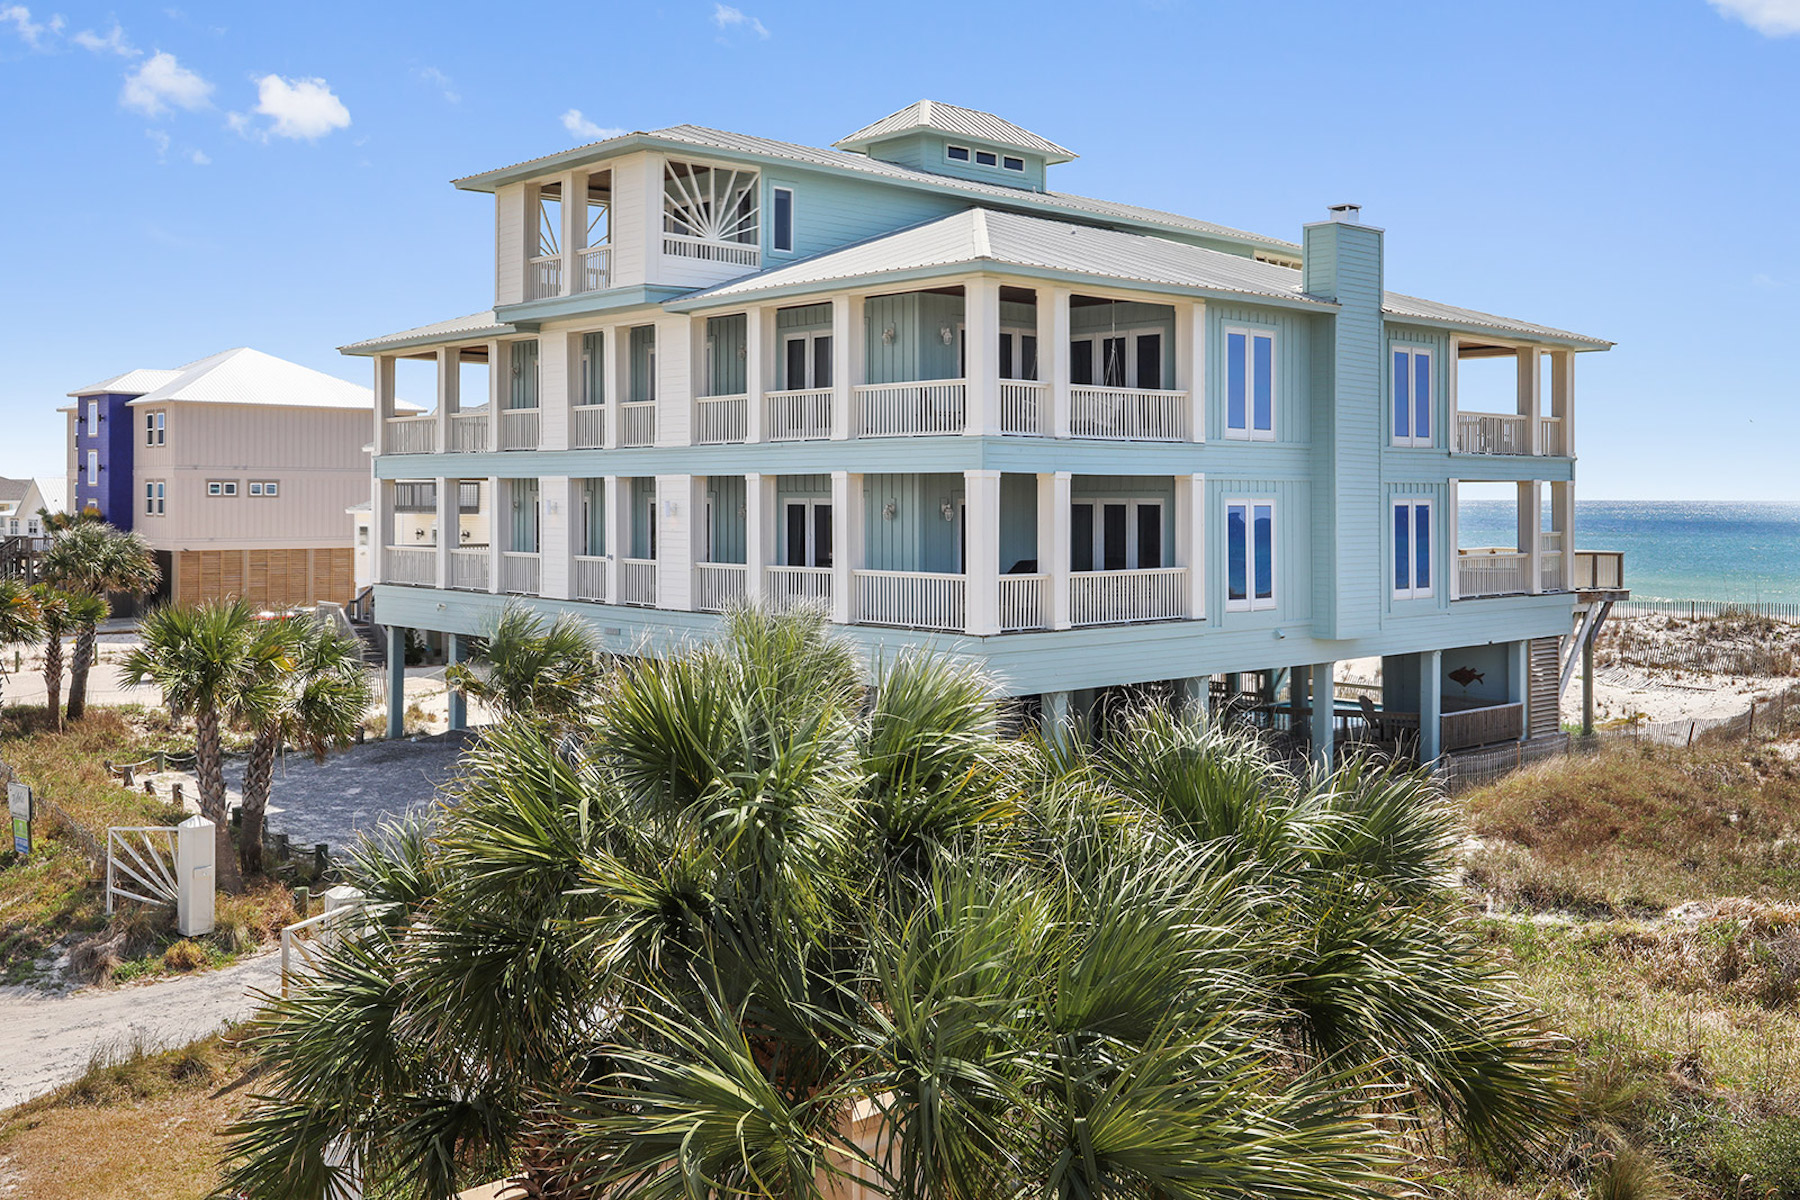 Single Family Home for Active at Halekai III 3173 W Beach Blvd Gulf Shores, Alabama 36542 United States